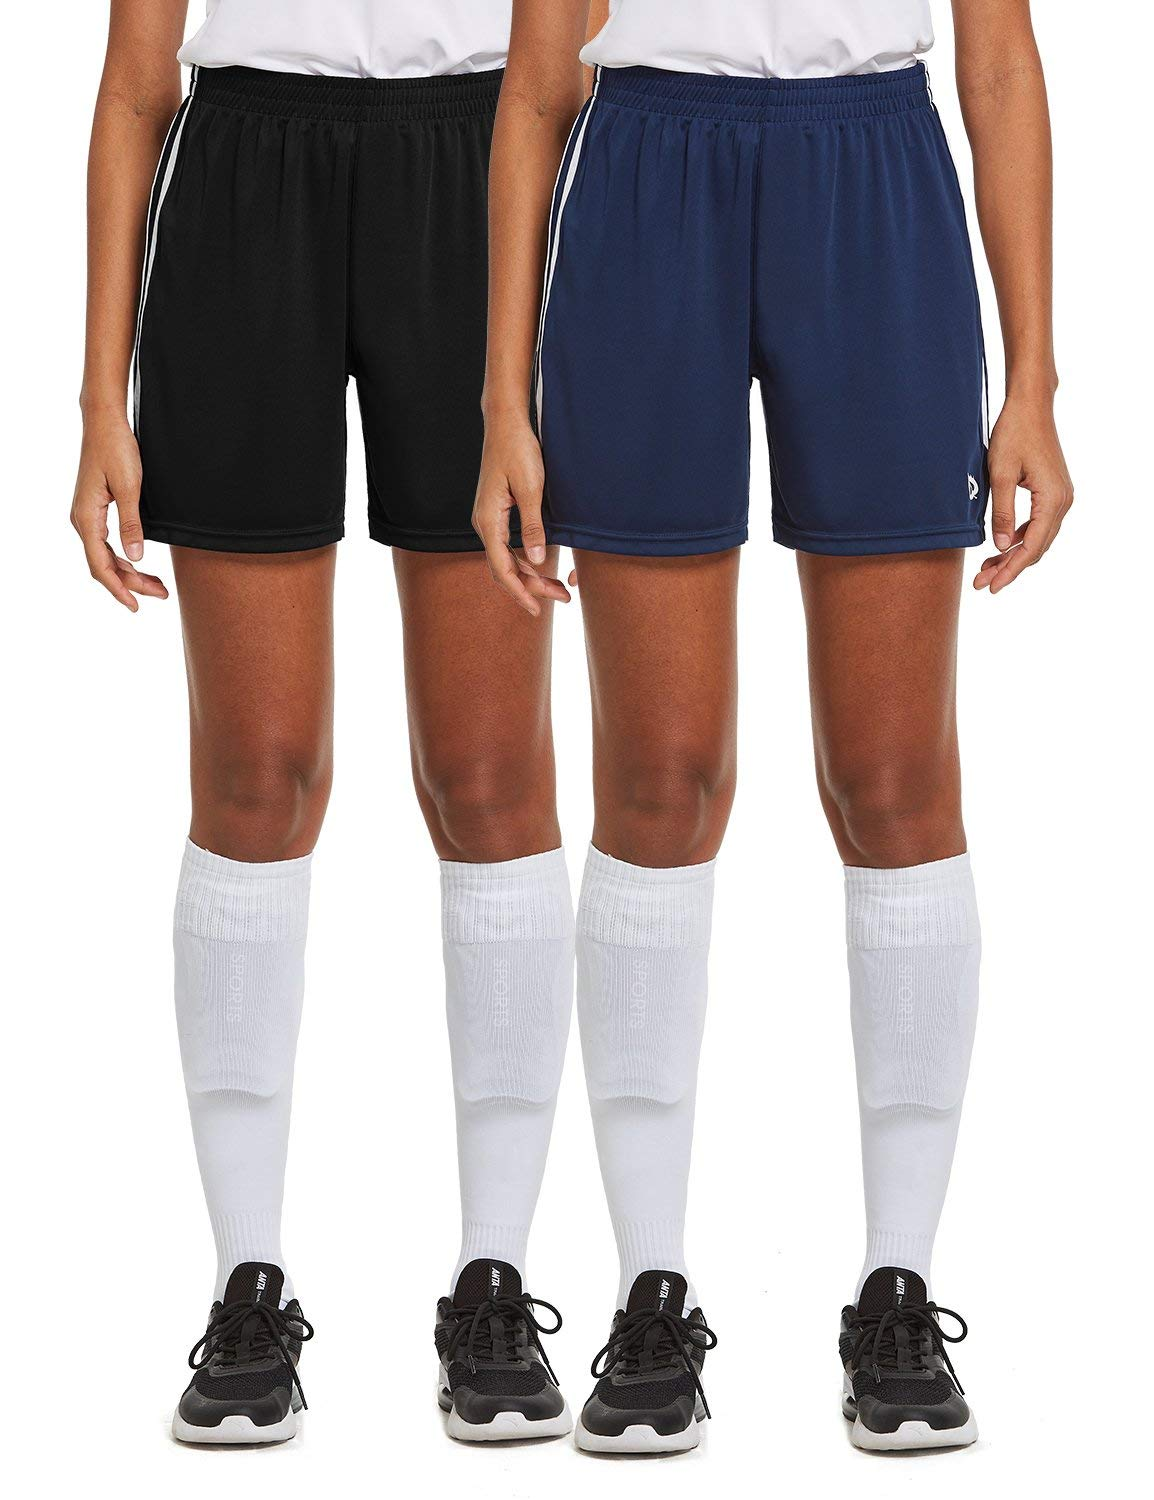 BALEAF Women's 5'' Basketball Soccer Lightweight Shorts 2-Pack UPF50+ Athletic Sports Training Loose-Fit with Drawstrings